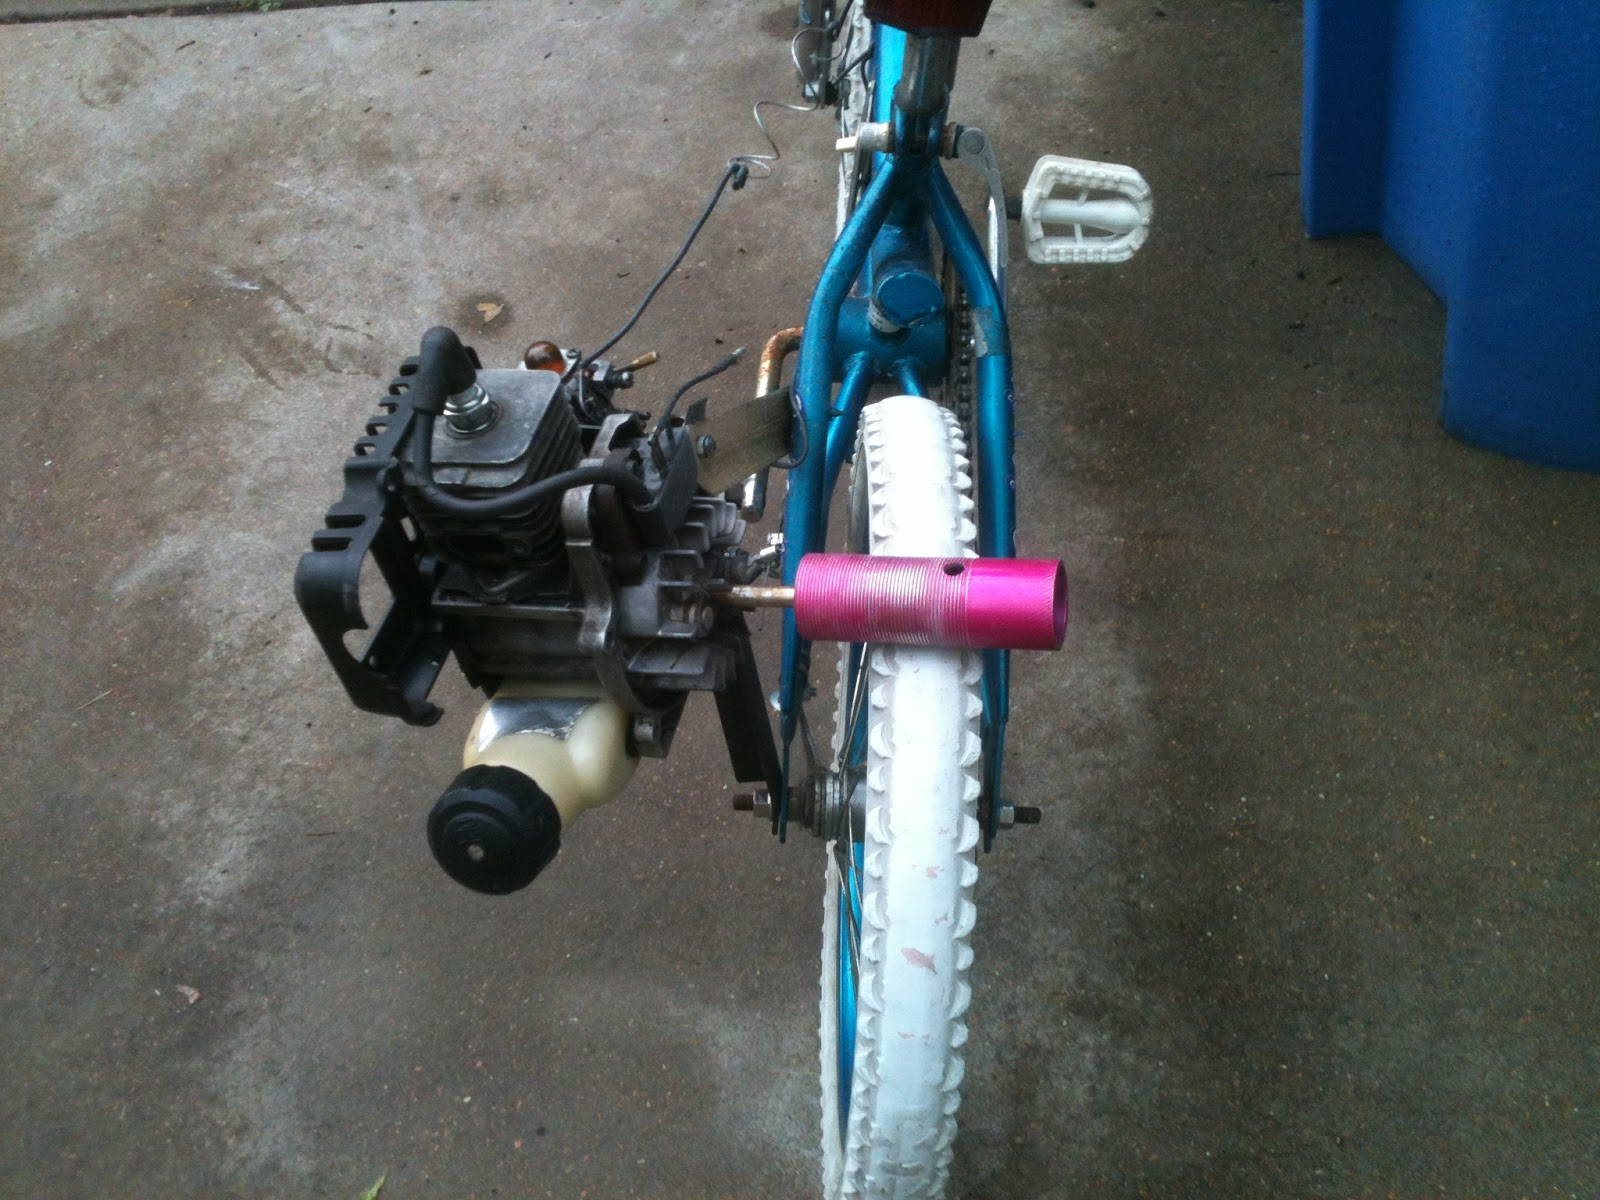 Build a weed eater bike: How To Build A Motorized Bicycle